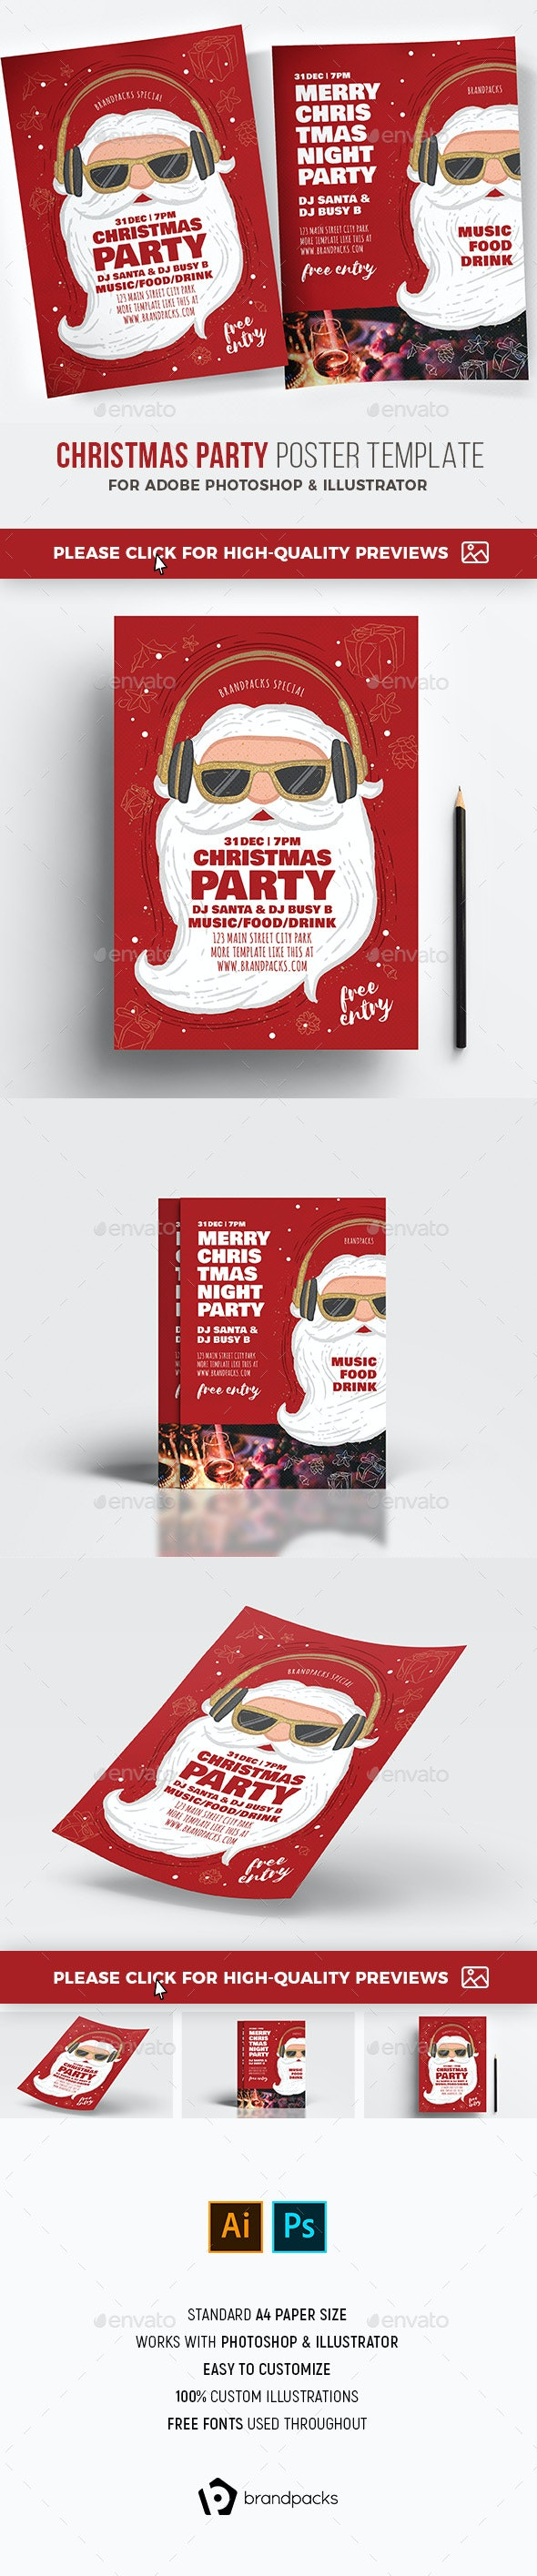 Christmas Party Poster Template - Holidays Events